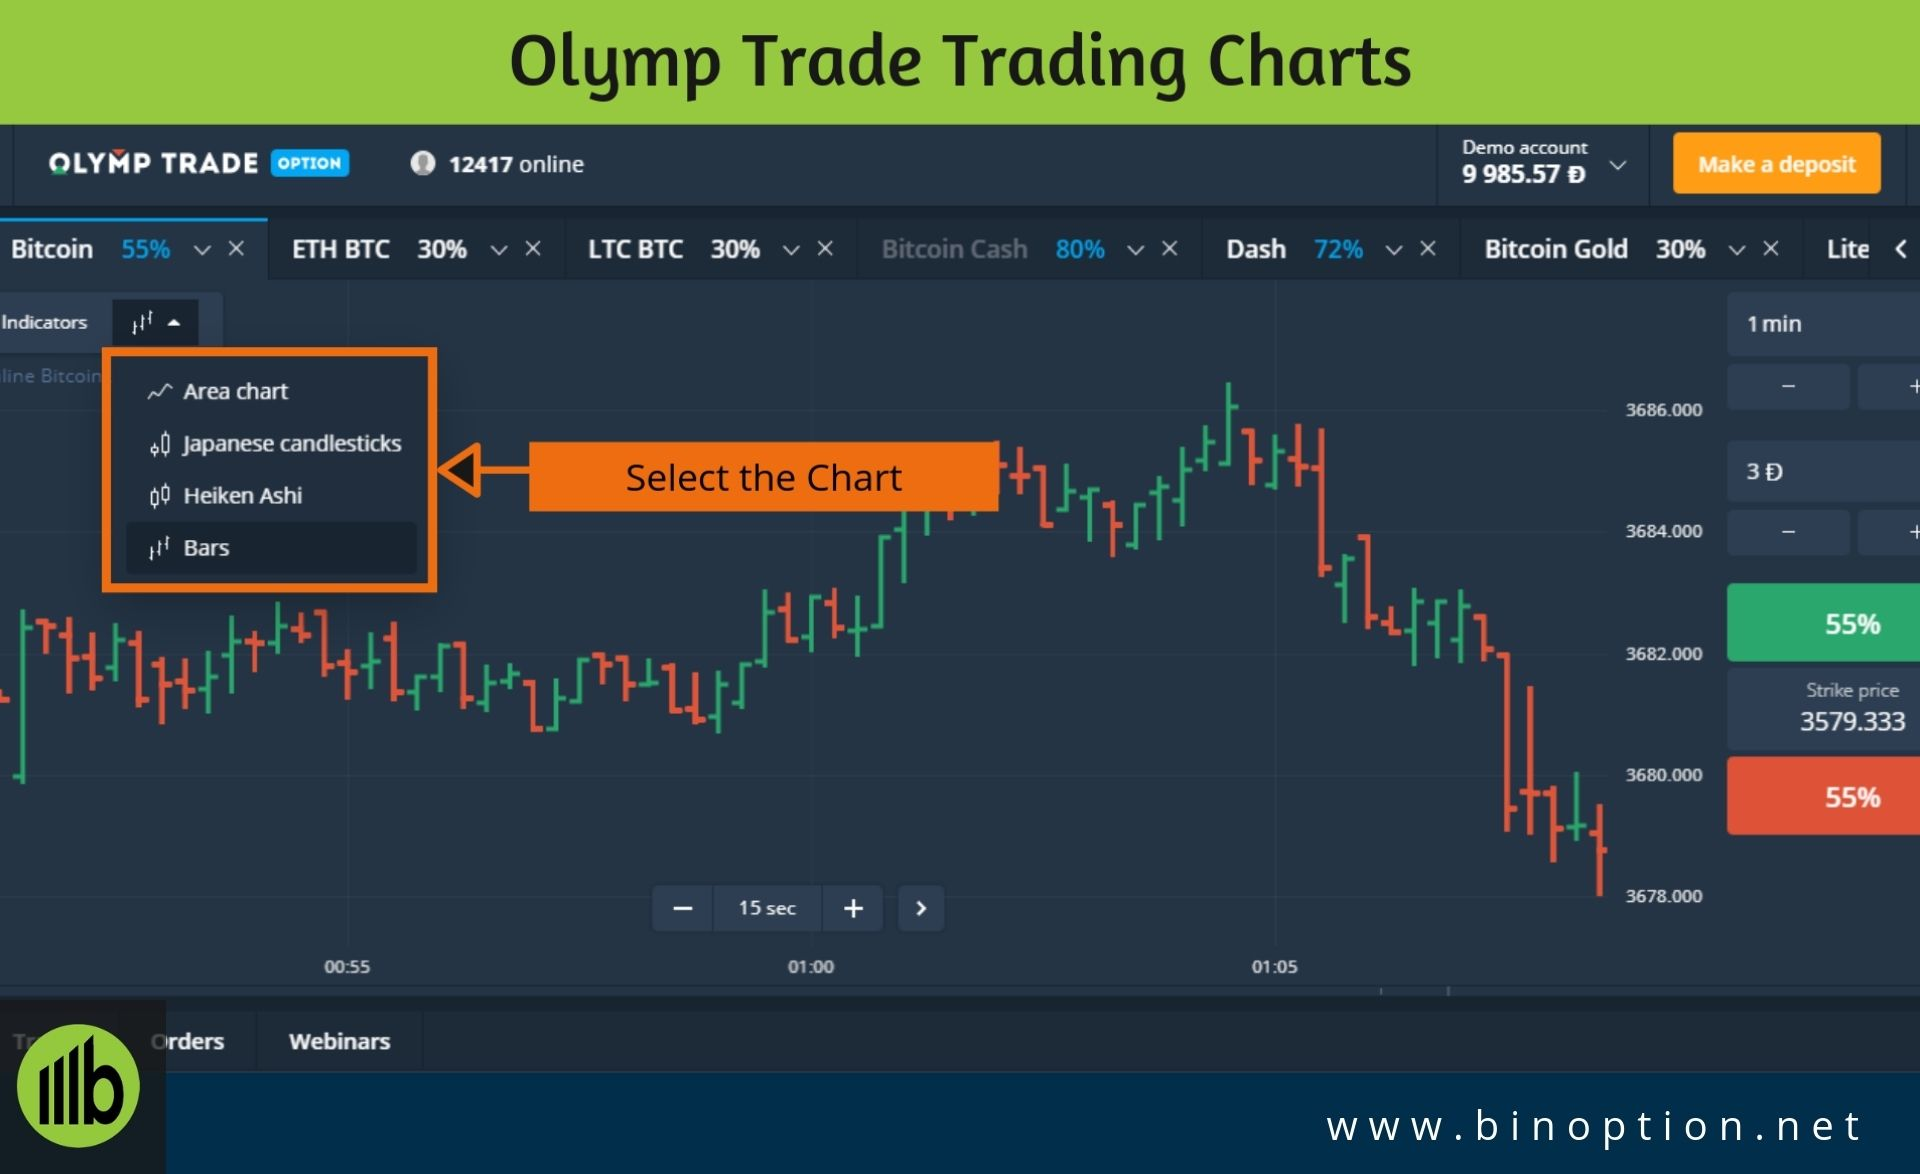 Olymp Trade Intraday Trading Chart Trading Brokers